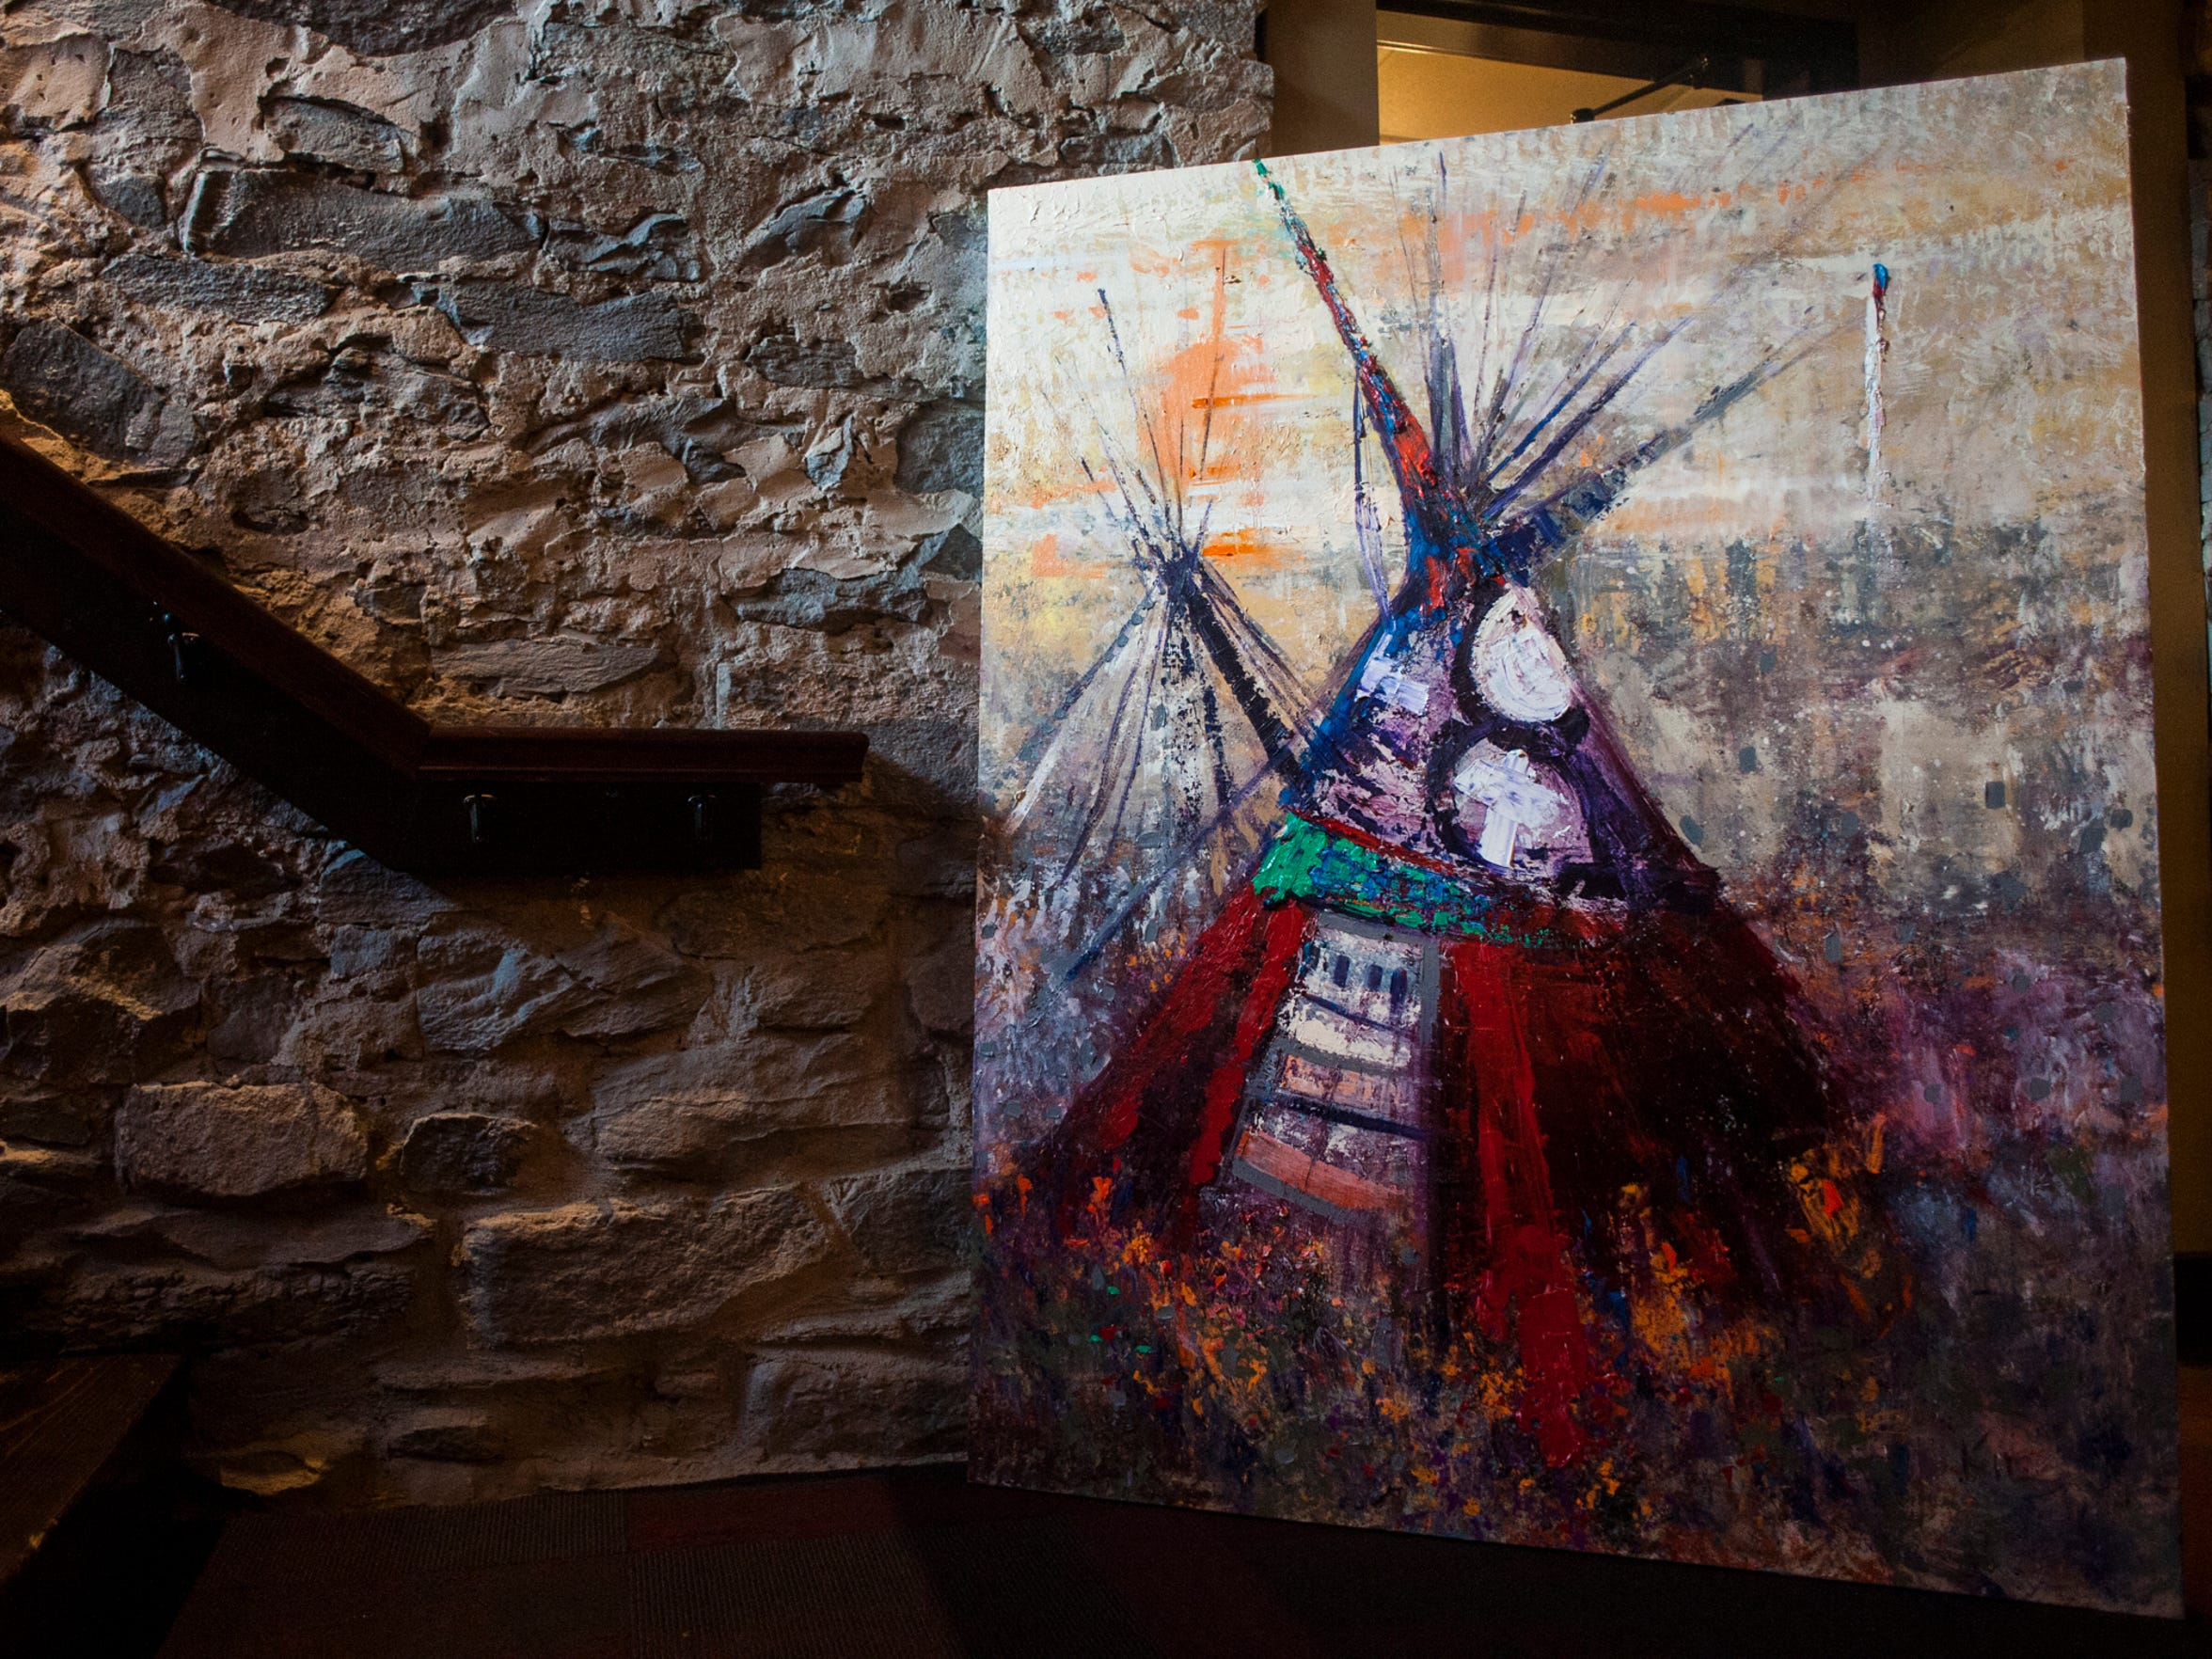 Kira Fercho's paintings can be seen downstairs at the Celtic Cowboy. They were photographed Thursday, March 17, 2016.